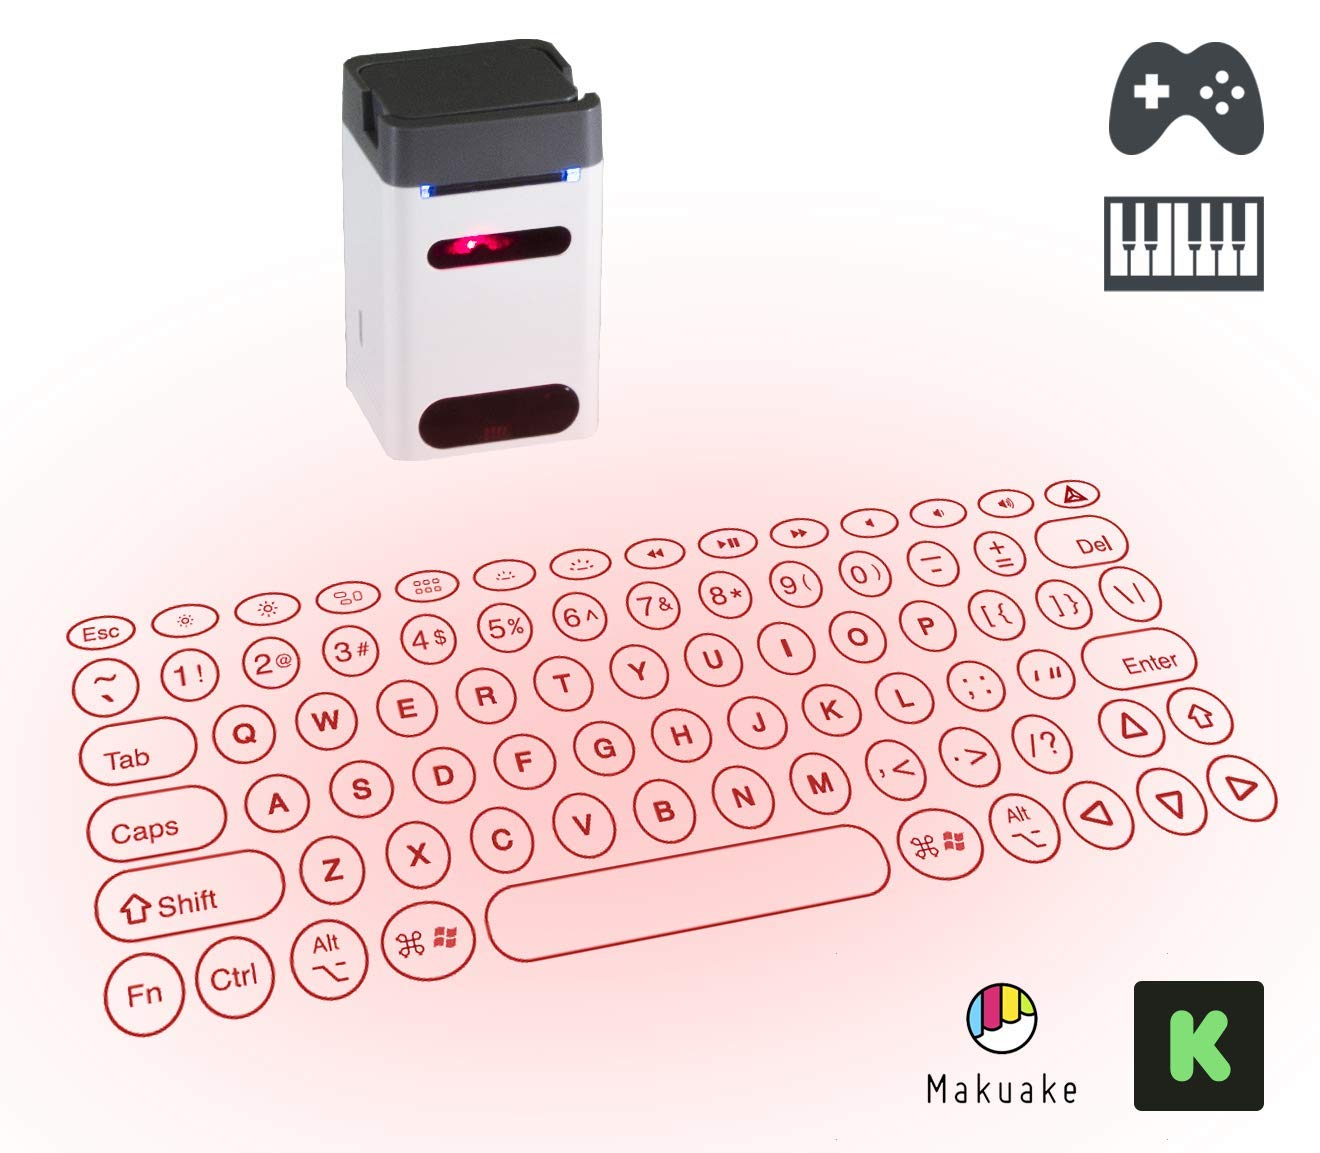 Serafim Keybo - World's Most Advanced Projection Keyboard & Piano (Black)